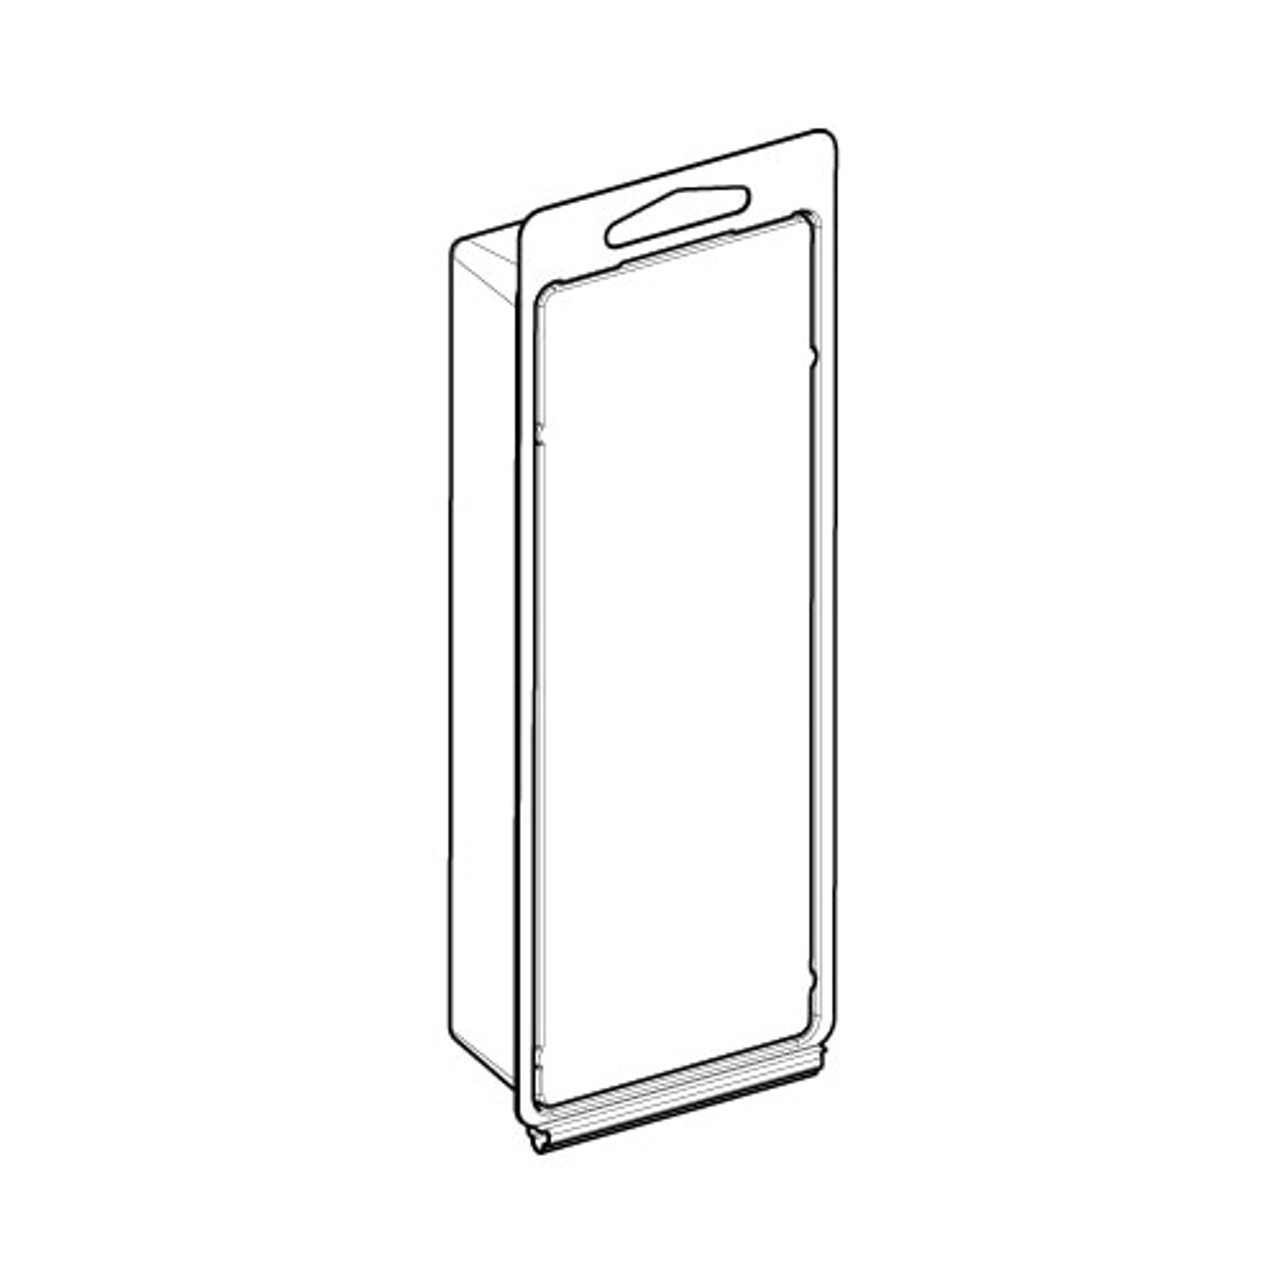 786802 - Stock Clamshell Packaging